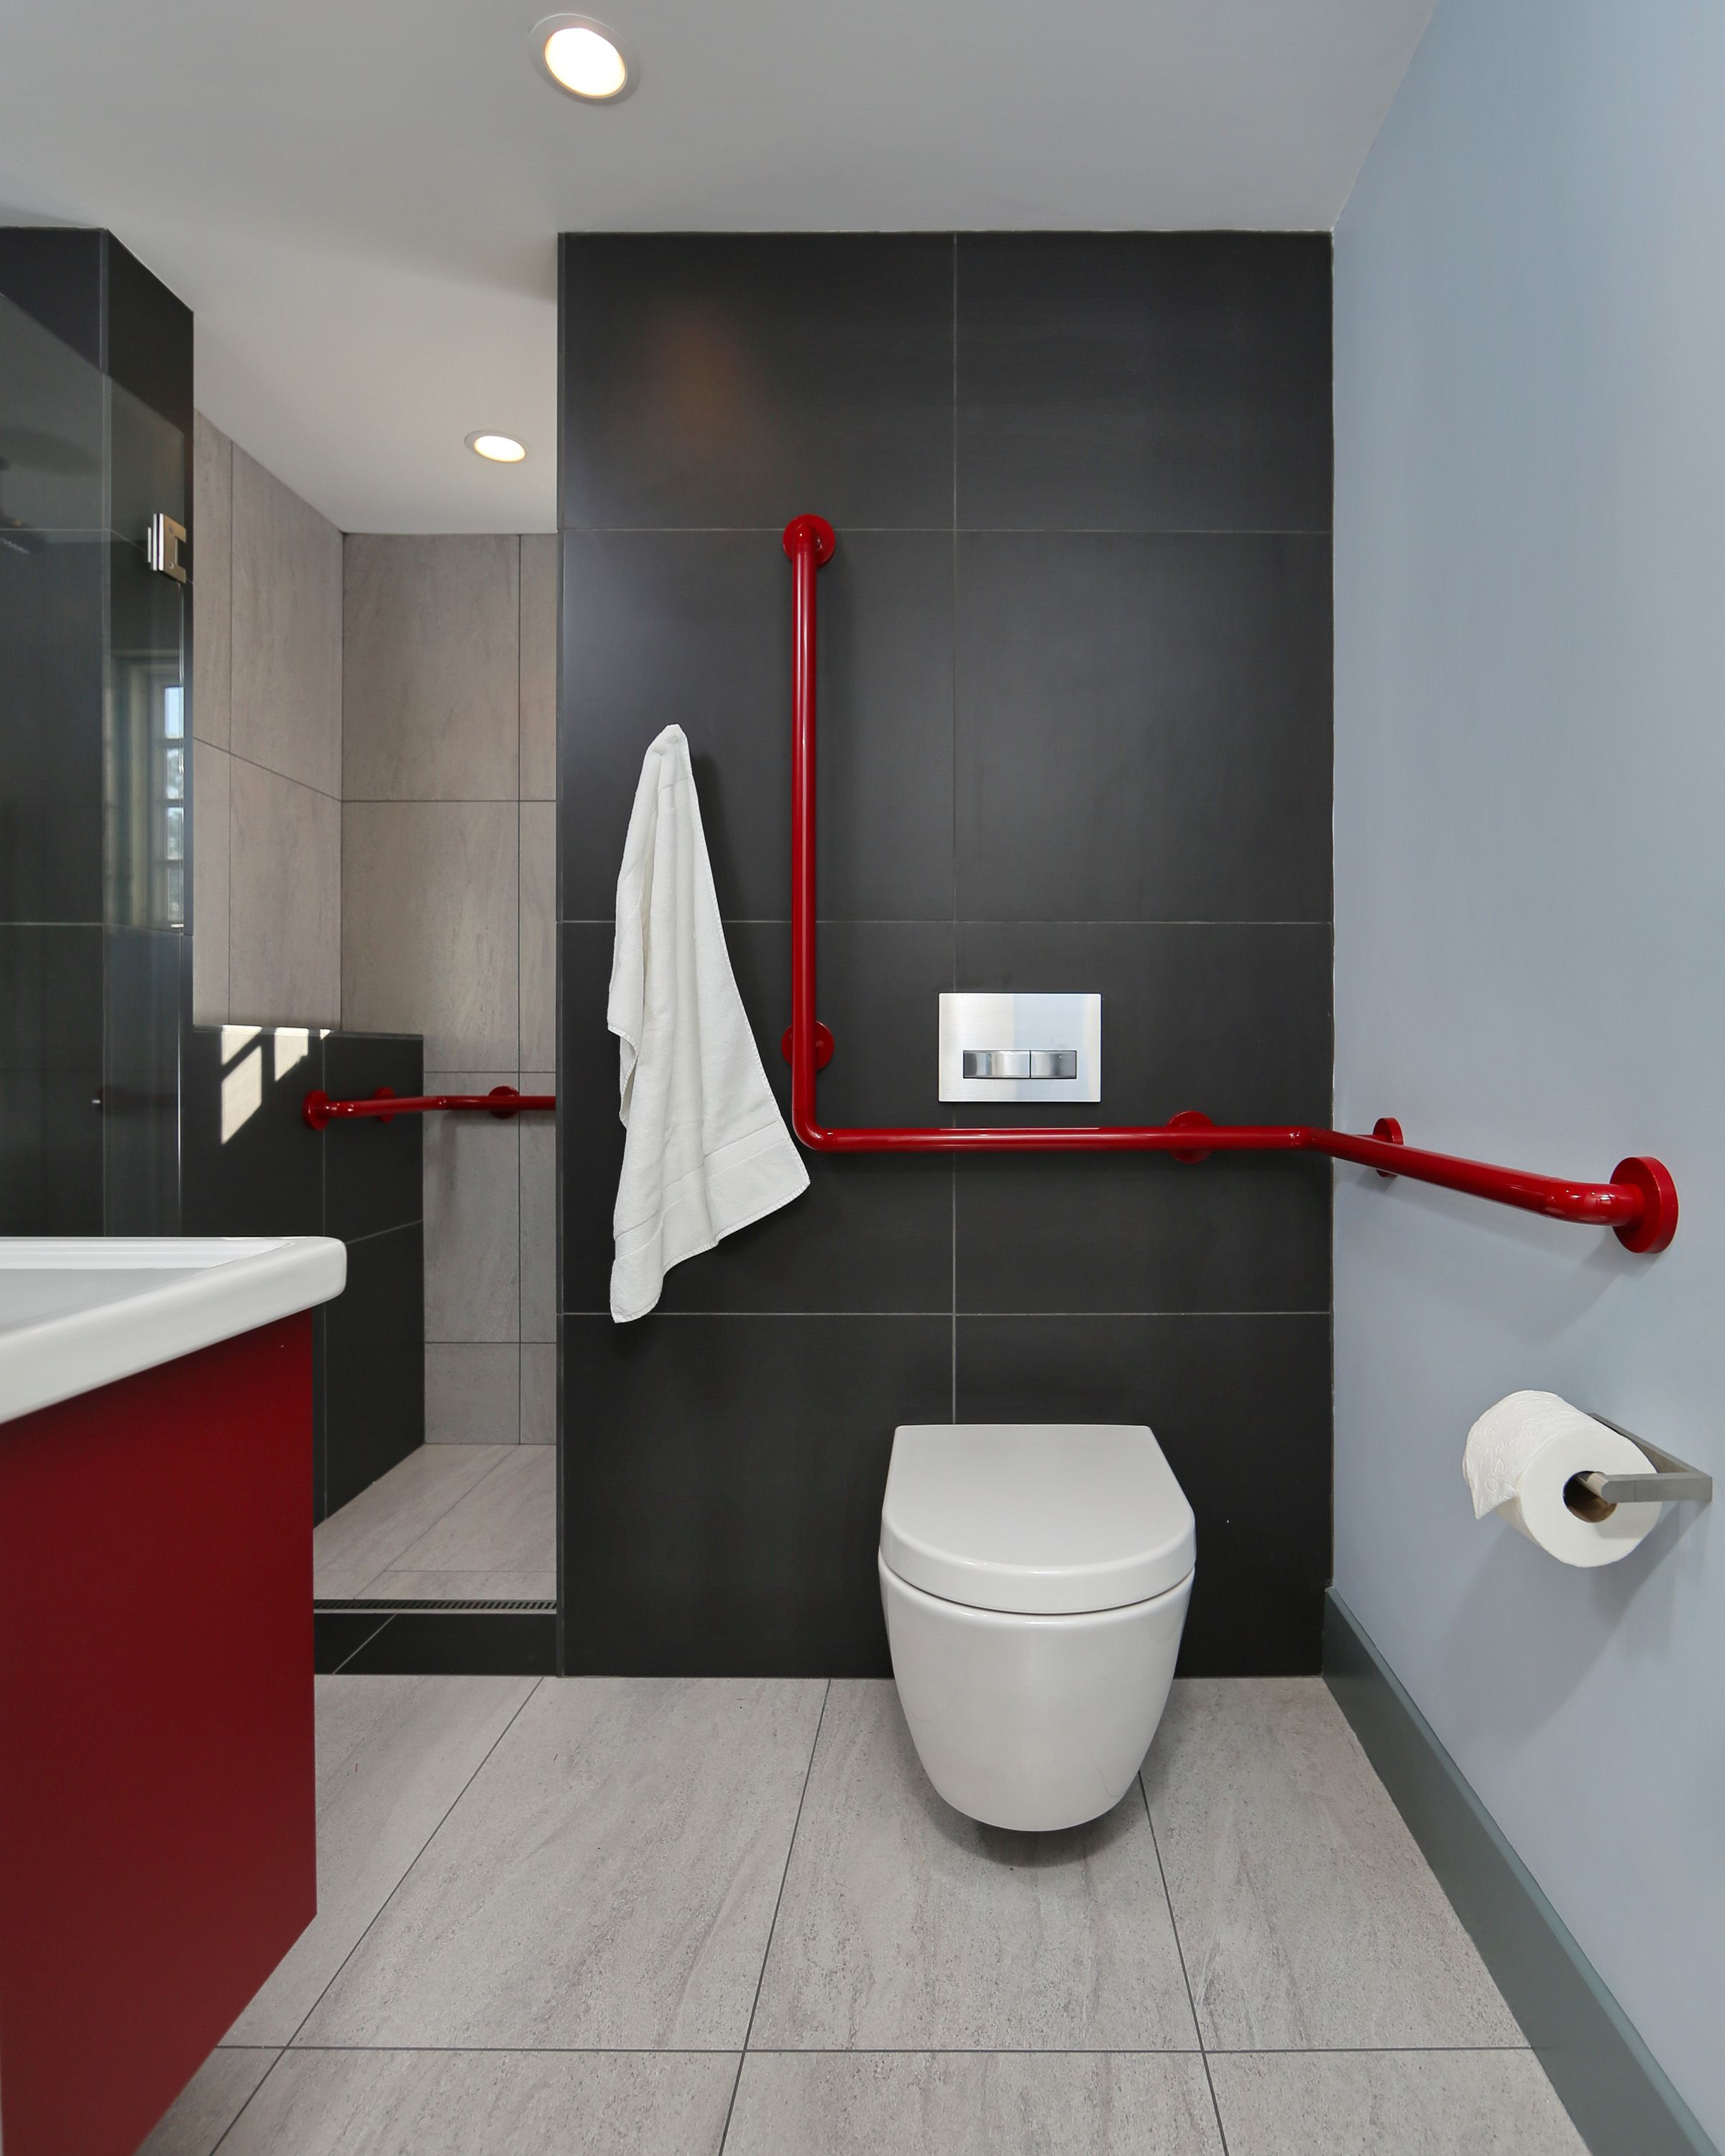 The project was to remodel a full bath and create a bedroom out of